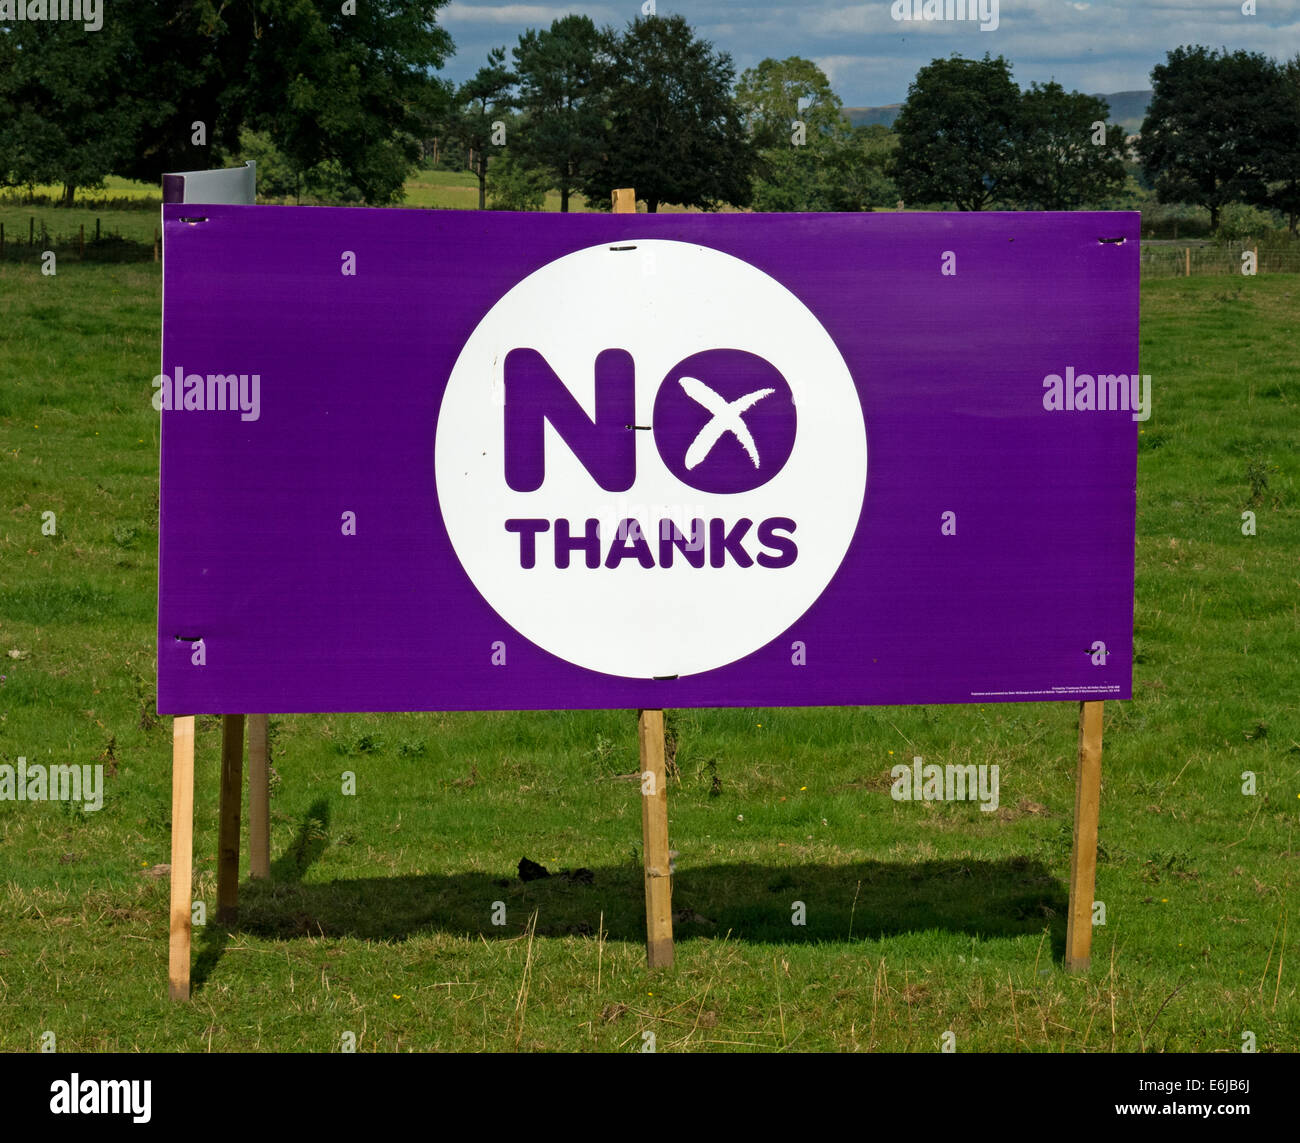 Sep,field,fields,rural,borders,decides,votes,ballot,vote,Scottish,Field,September,2014,Scotland,UK,debate,result,Scots,opinion,bettertogether,bright,sunshine,passion,Nothanks,publicity,Glaswegian,Glaswegians,indyref,indyref,Alastair,Darling,Alex,Salmon,Salmond,powers,power,for,holyrood,Edinburgh,City,of,Glasgow City,of,Edinburgh Fife North,Lanarkshire South,Lanarkshire Aberdeenshire Highland City,of,Aberdeen West,Lothian Renfrewshire Falkirk Dumfries,and,Galloway Perth,and,Kinross City,of,Dundee North,Ayrshire East,Ayrshire Scottish,Borders South,Ayrshire Angus East,Dunbartonshire East,Lothian West,Dunbartonshire Stirling East,Renfrewshire Argyll,and,Bute Moray Midlothian Inverclyde Clackmannanshire Na,h-Eileanan,Siar,(Western,Isles) Shetland,Islands Orkney,Islands,CNES,Scottish,SNP,independance party,independence,indyref,referendum,2nd,second,Brexit,#Brexit,hotpixuk,@hotpixuk,Buy Pictures of,Buy Images Of